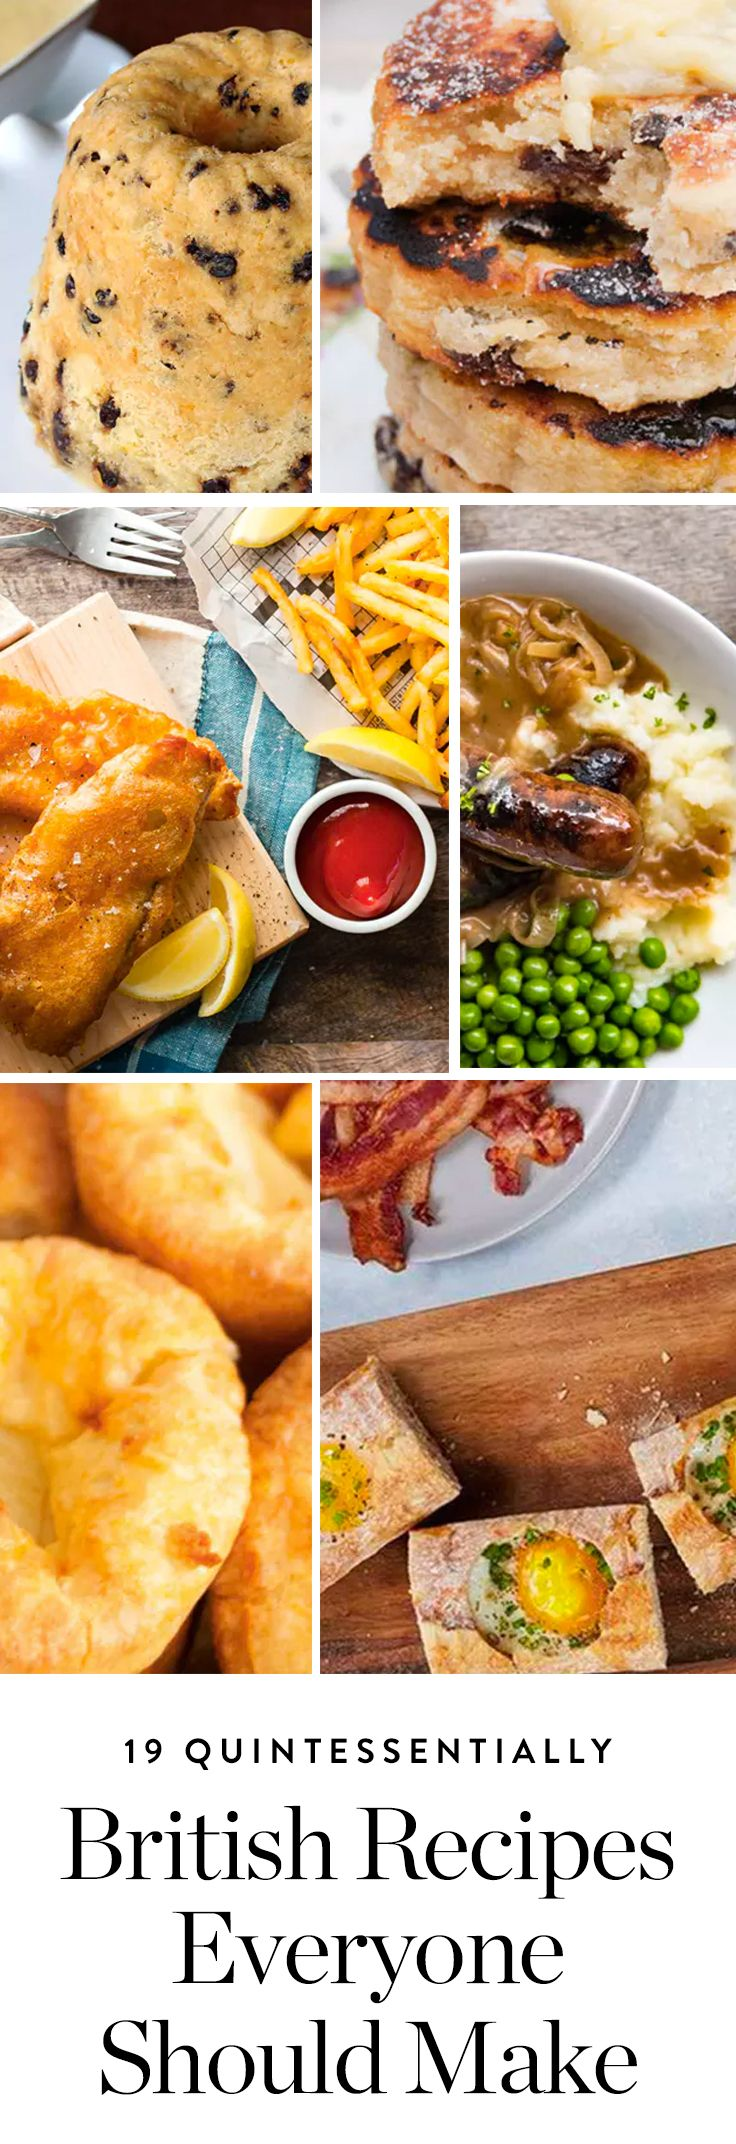 Here are 19 classic British recipes you should absolutely make. #britishrecipes #recipes #englishbreakfast #recipes